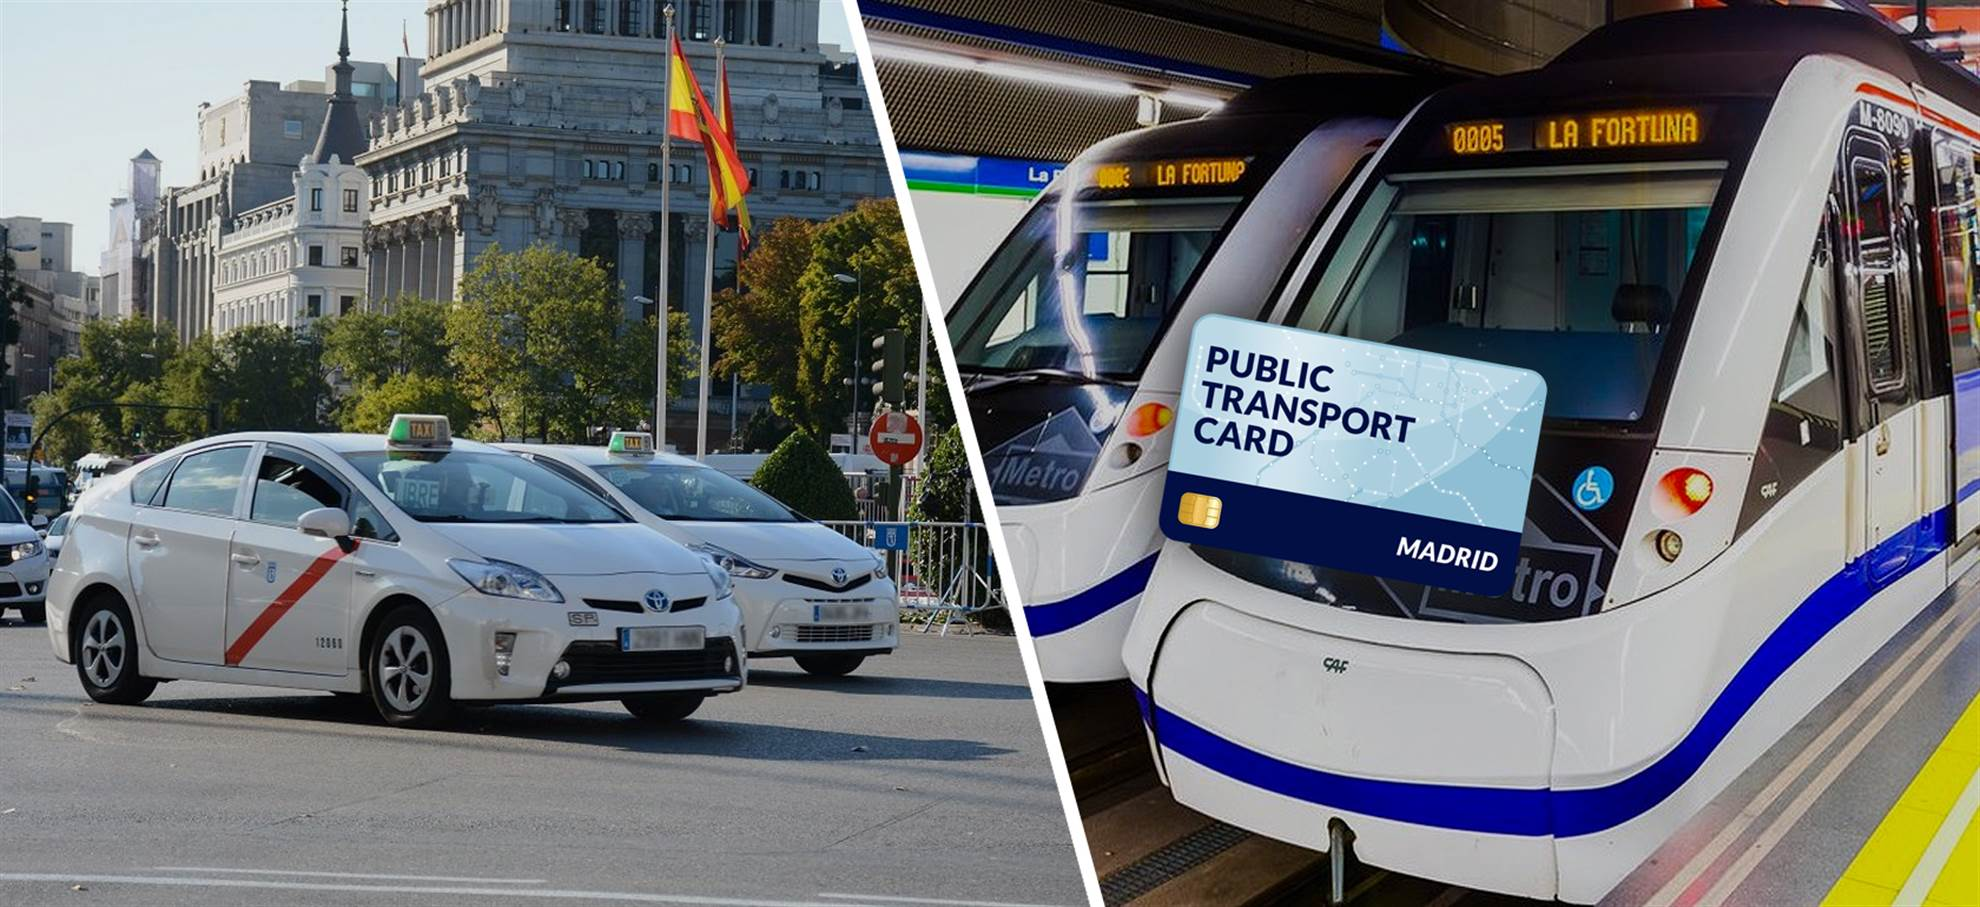 Madrid Travel Card